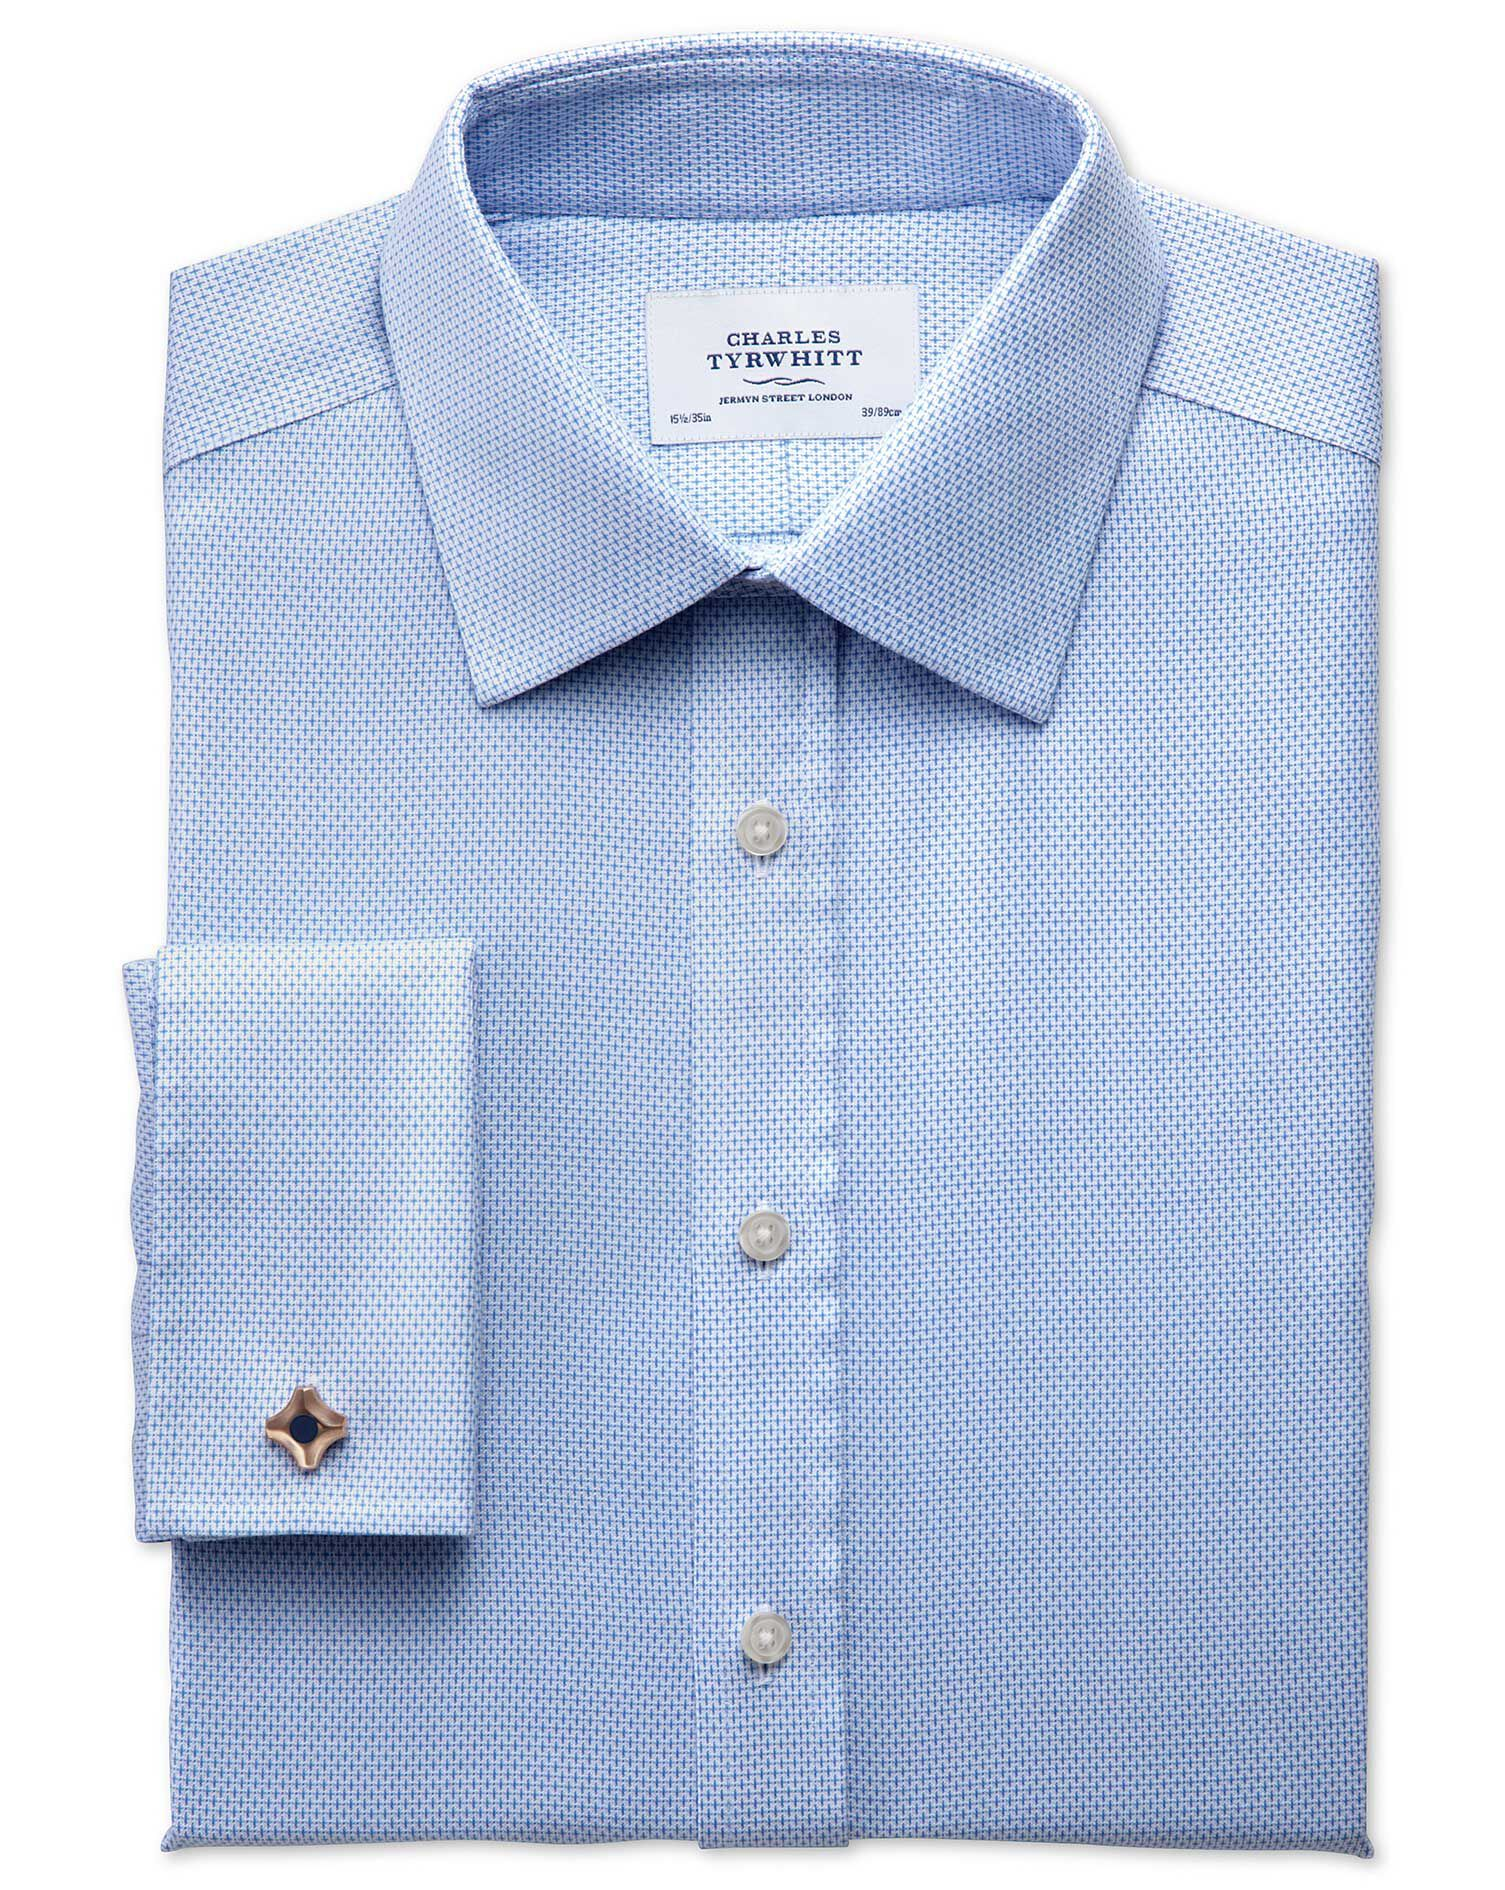 Extra Slim Fit Non-Iron Imperial Weave Sky Blue Cotton Formal Shirt Double Cuff Size 16/38 by Charle